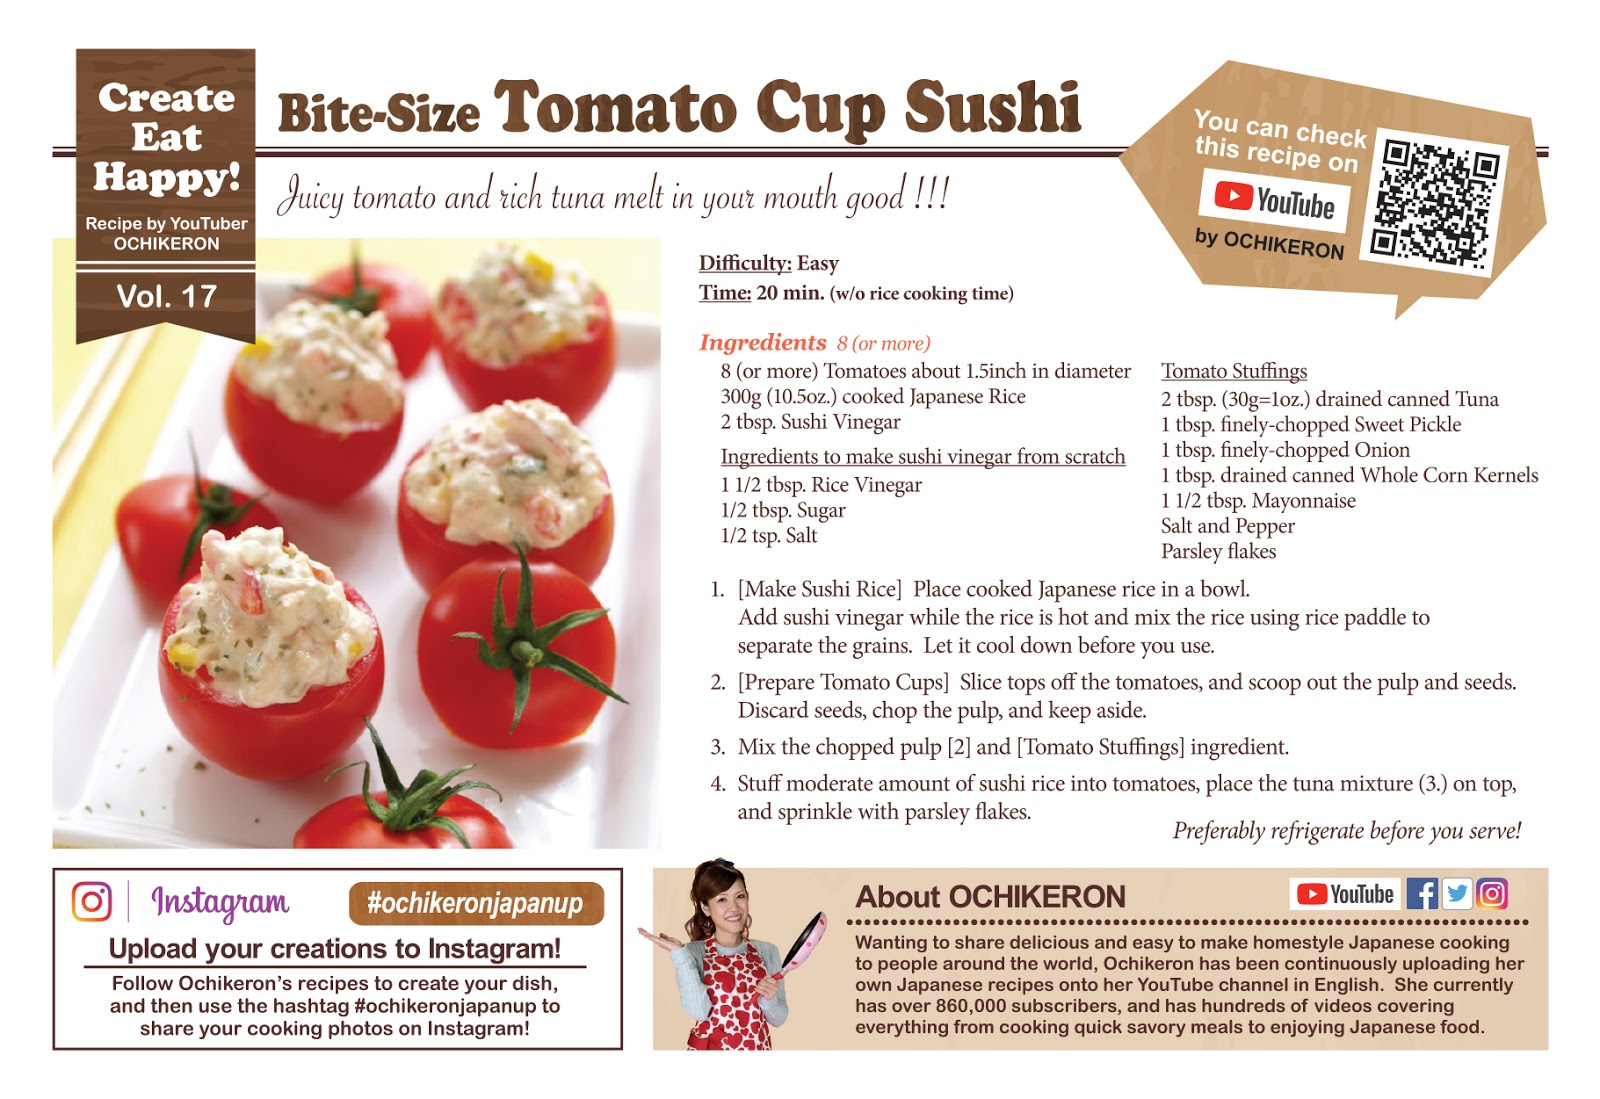 Bite-Size Tomato Cup Sushi - Video Recipe | Create Eat Happy